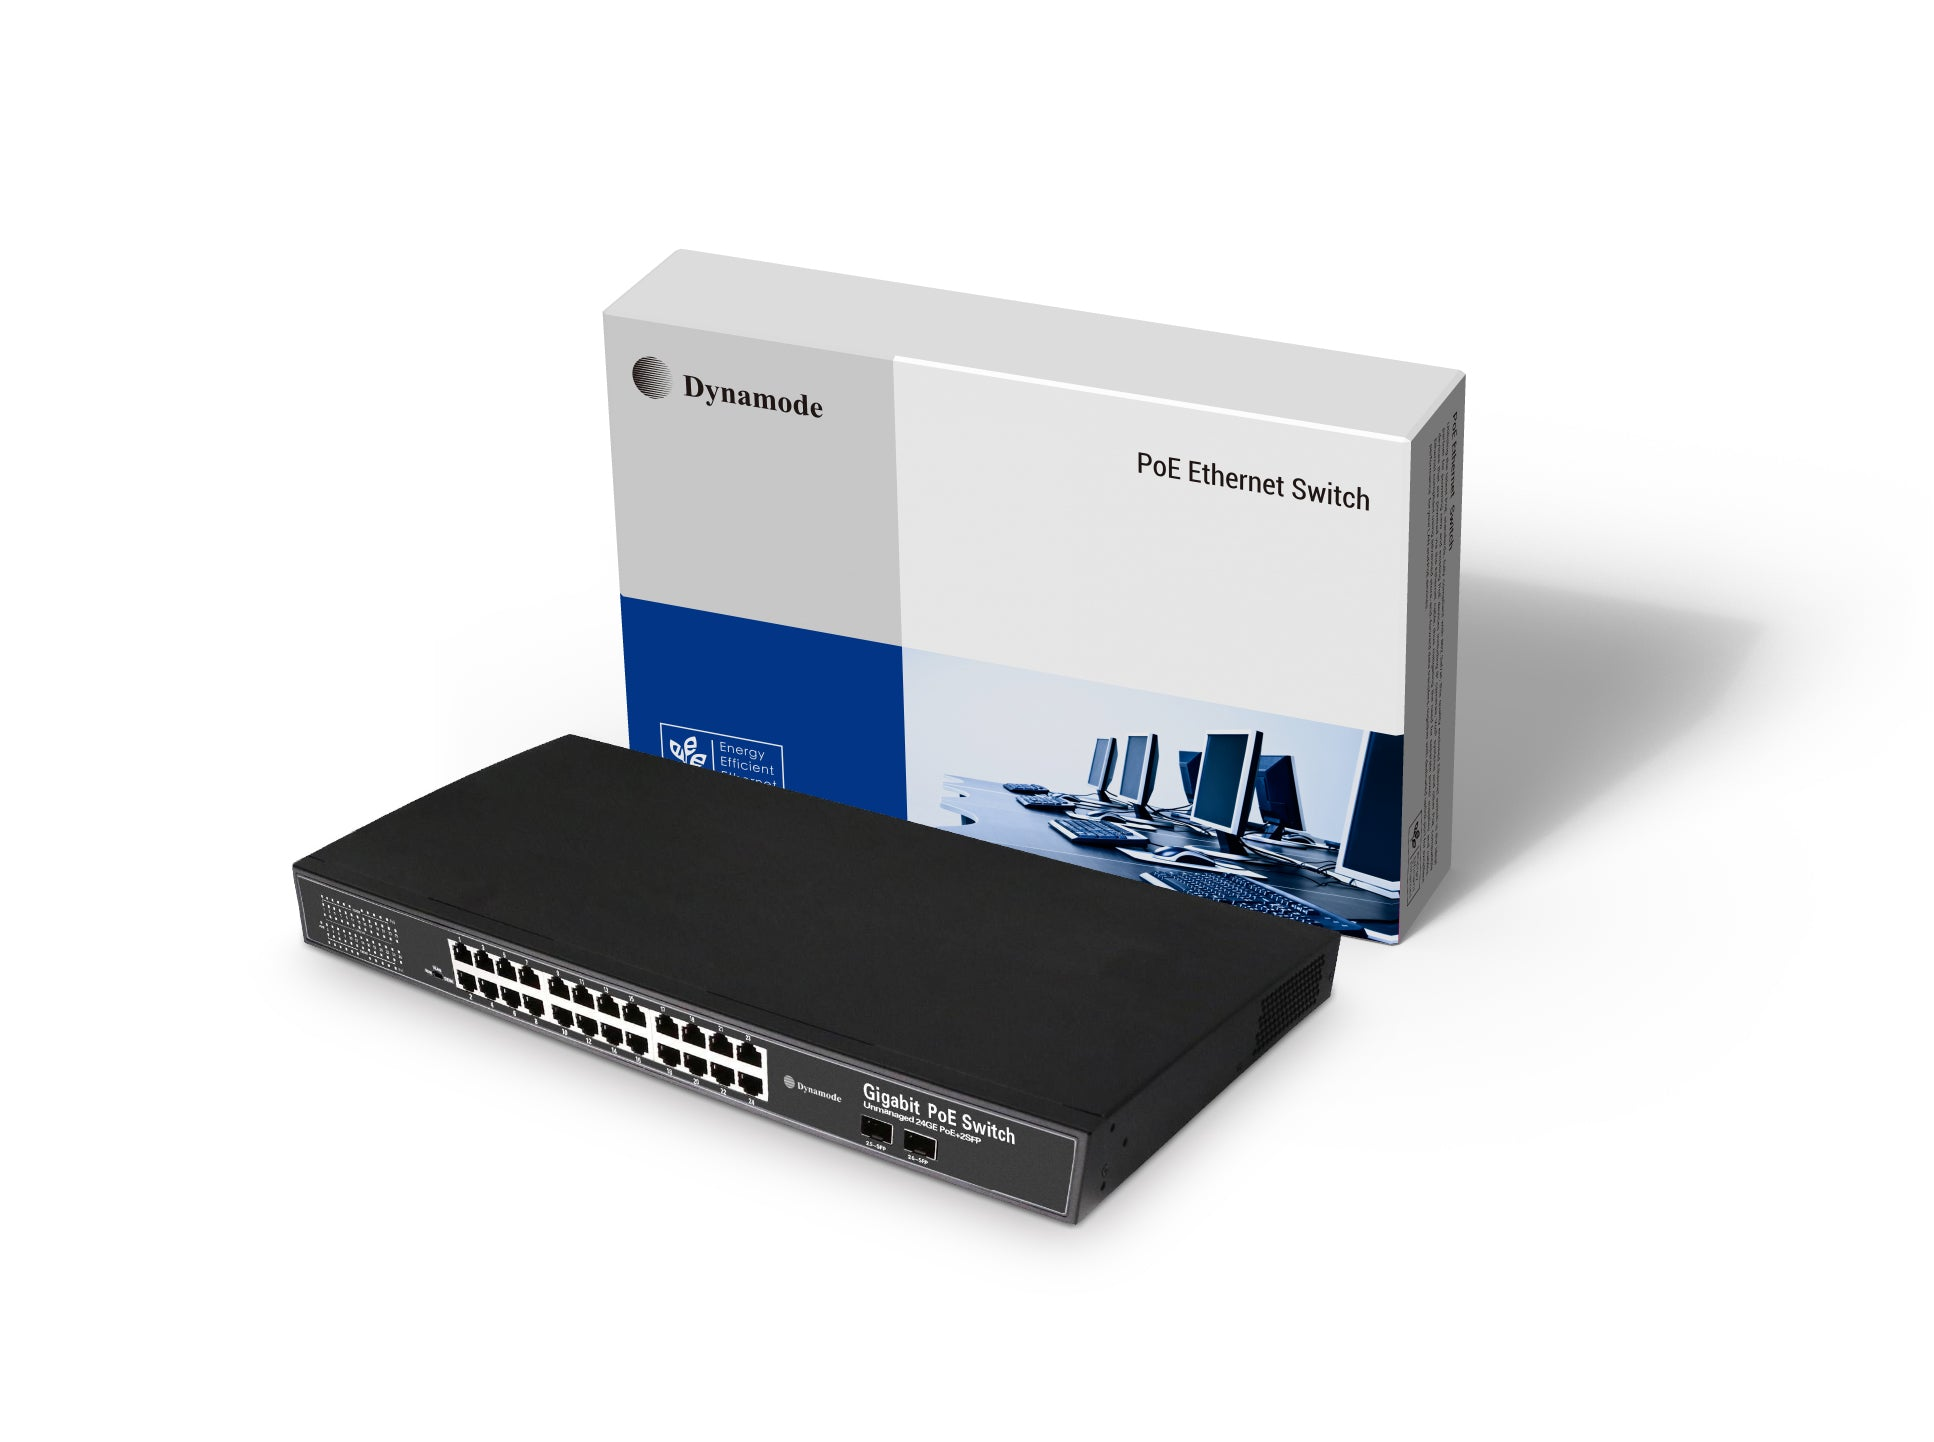 24 Port Gigabit Switch POE +2 SFP uplink ports